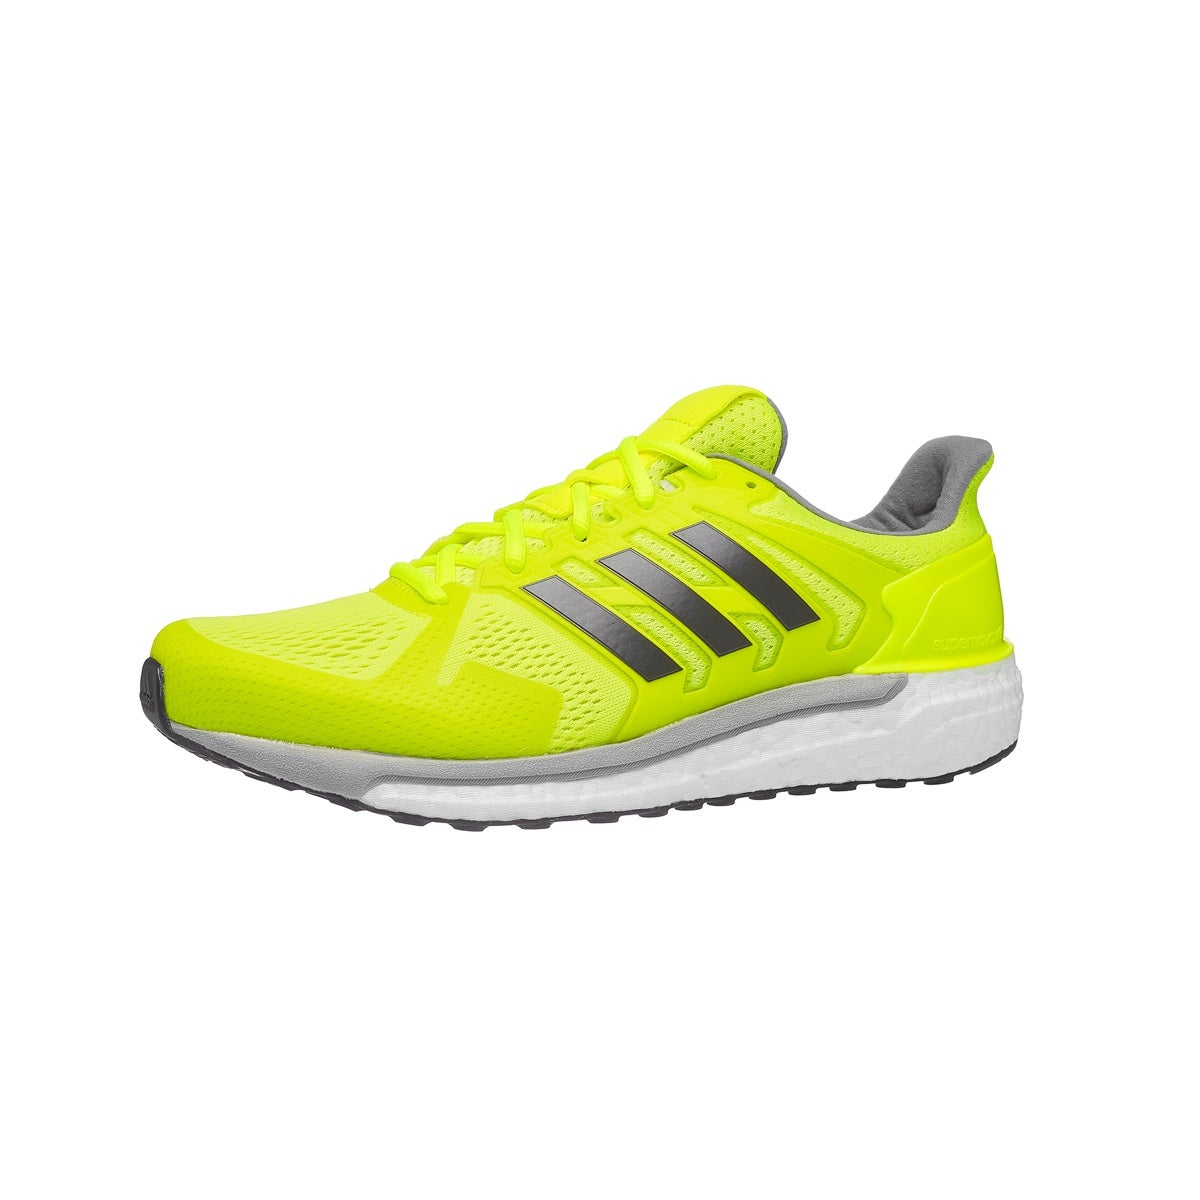 ba43e0c77f254a adidas Supernova ST Men s Shoes Sun Yellow 360° View